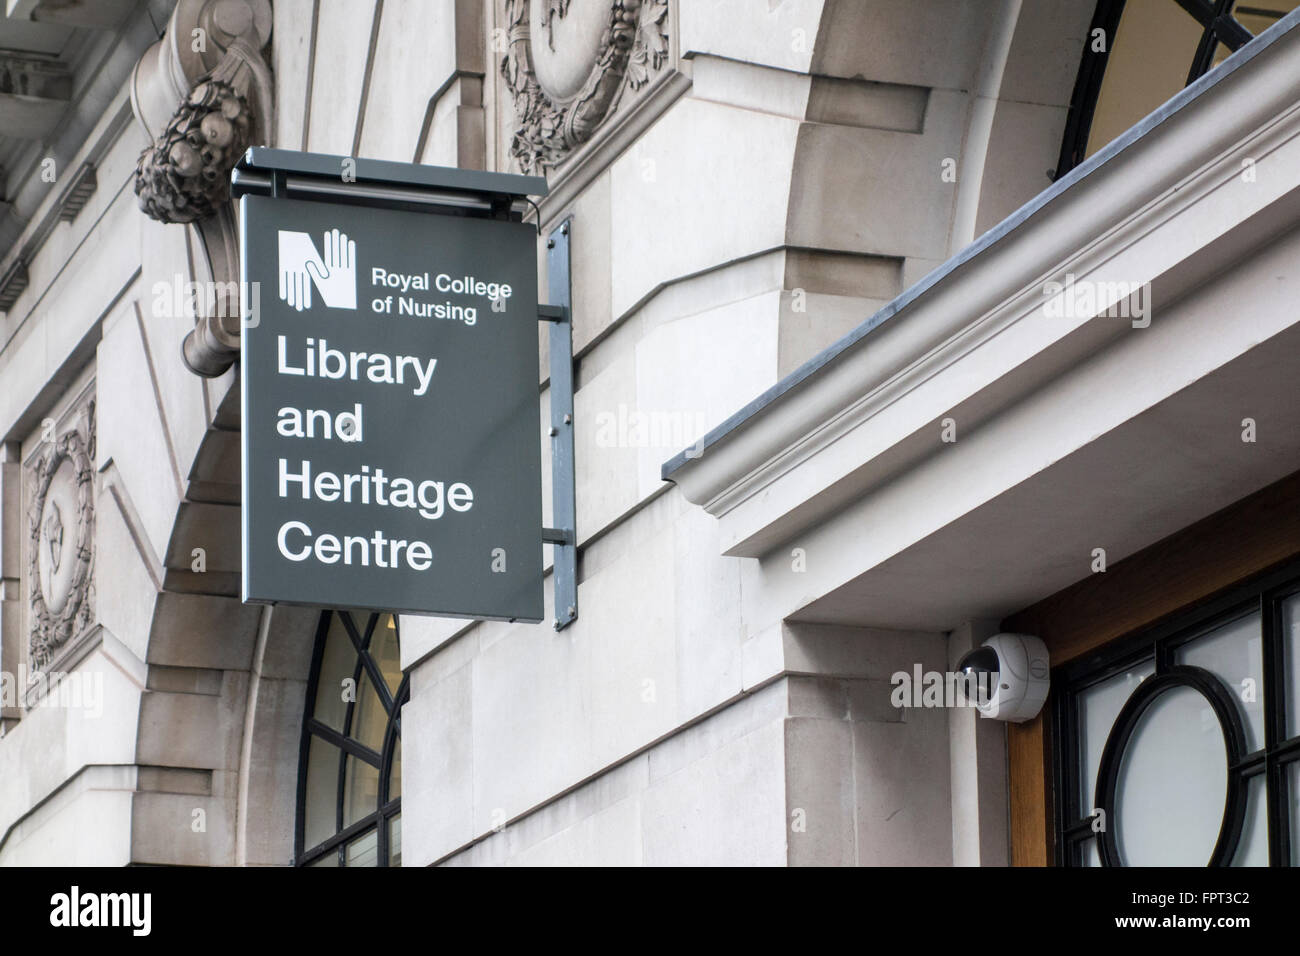 Royal College of Nursing, Library and Heritage Centre, London, UK - Stock Image